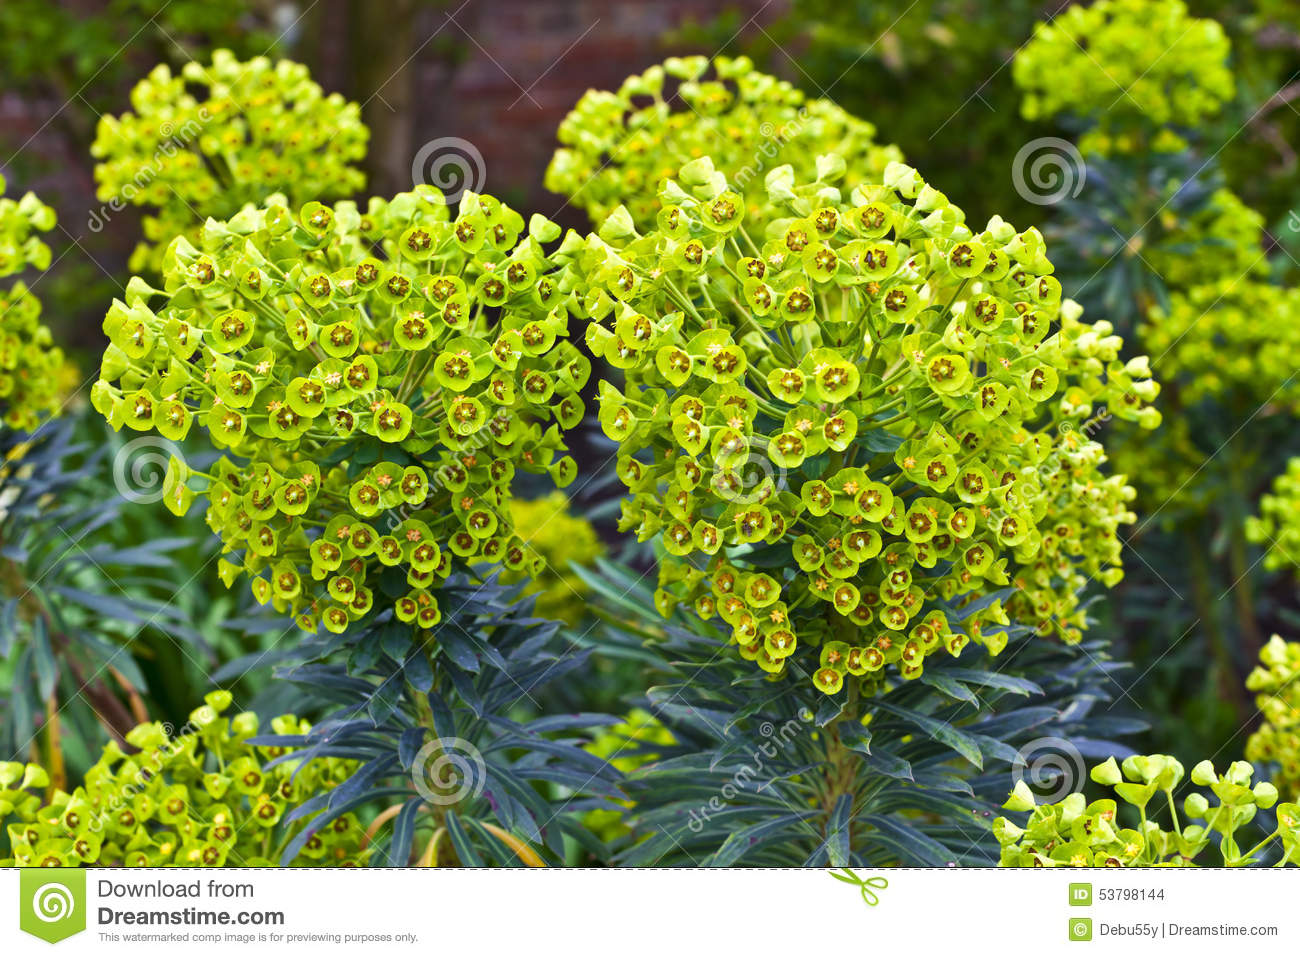 Plante vivace dans un jardin photo stock image 53798144 for Plante de jardin